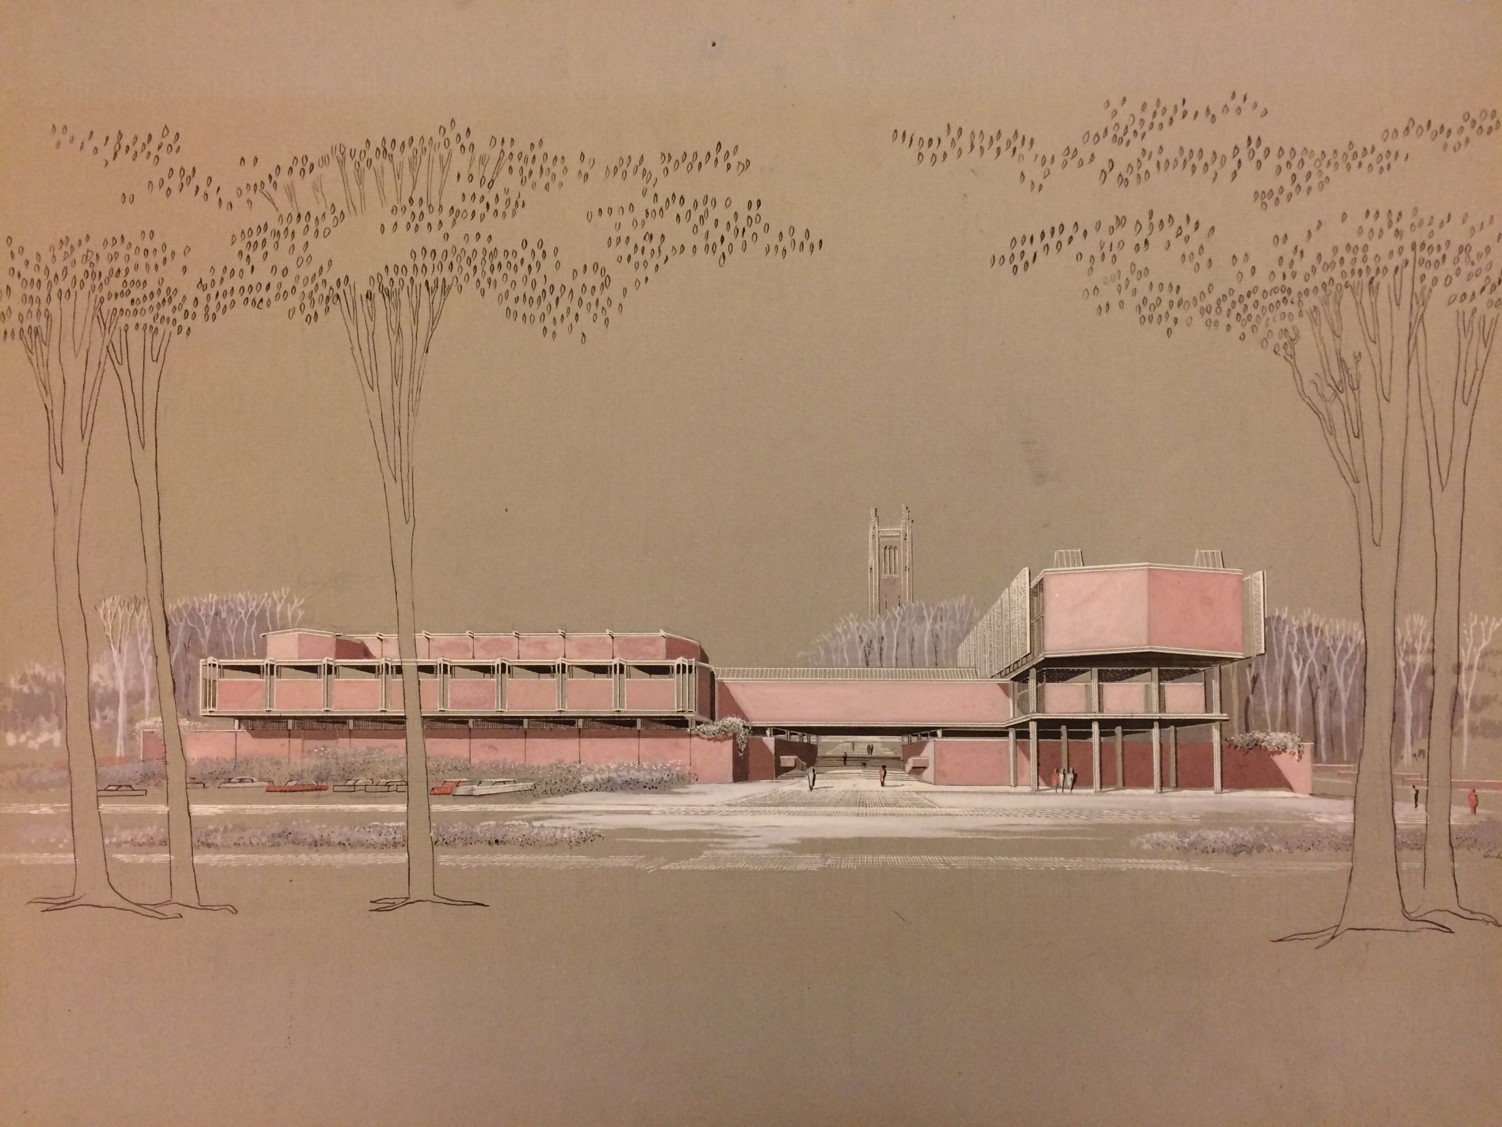 Wellesley College - Jewett Arts Center Conservation Plan - Conservation Management Plan for Paul Rudolph's Jewett Arts Center, his first major institutional work and first outside Florida. Funded by a